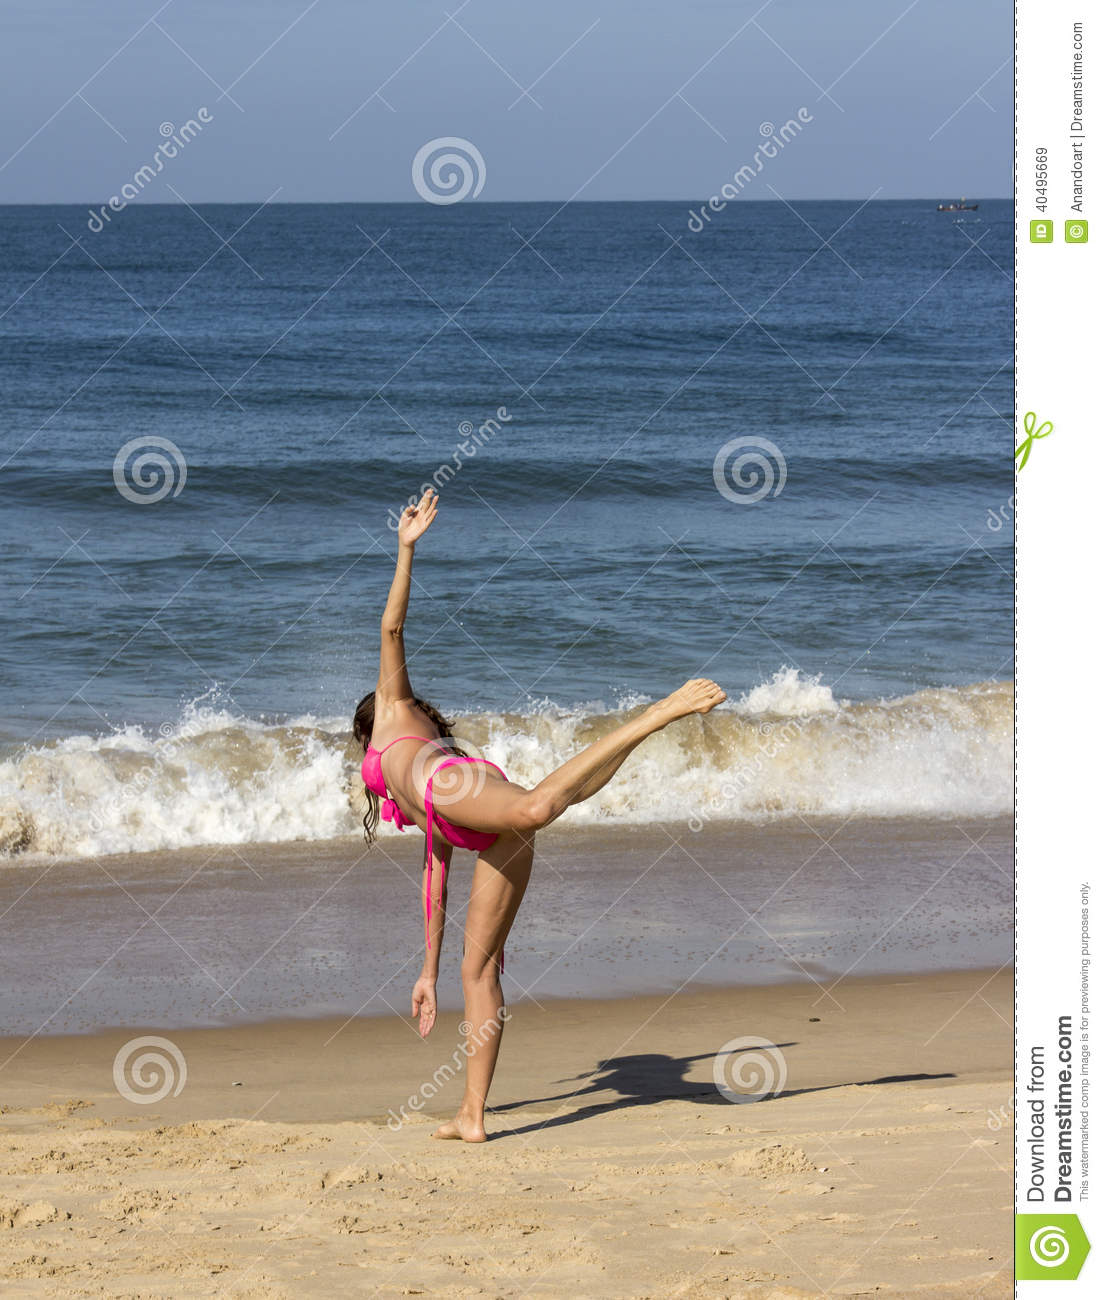 Woman With Beautiful Body In Bikini At Beach Stock Image: Yoga At The Beach Of Goa Stock Image. Image Of Performing